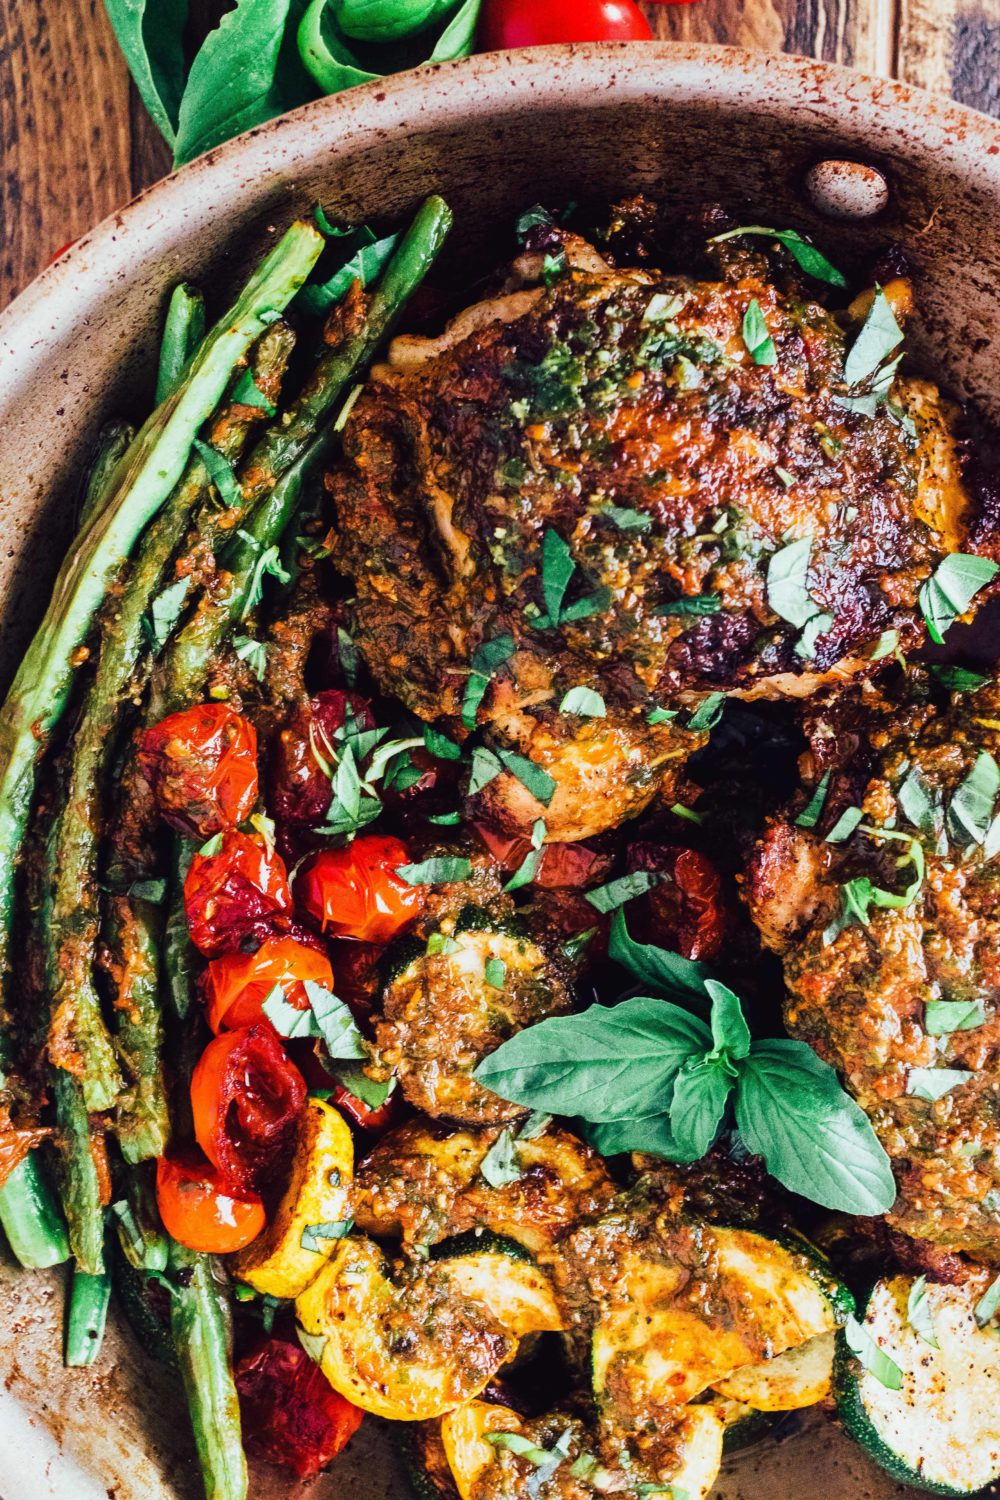 Sun Dried Tomato Pesto Chicken, a great #paleo, #healthy, #glutenfree, #grainfree, #dairyfree, #whole30 #recipe.